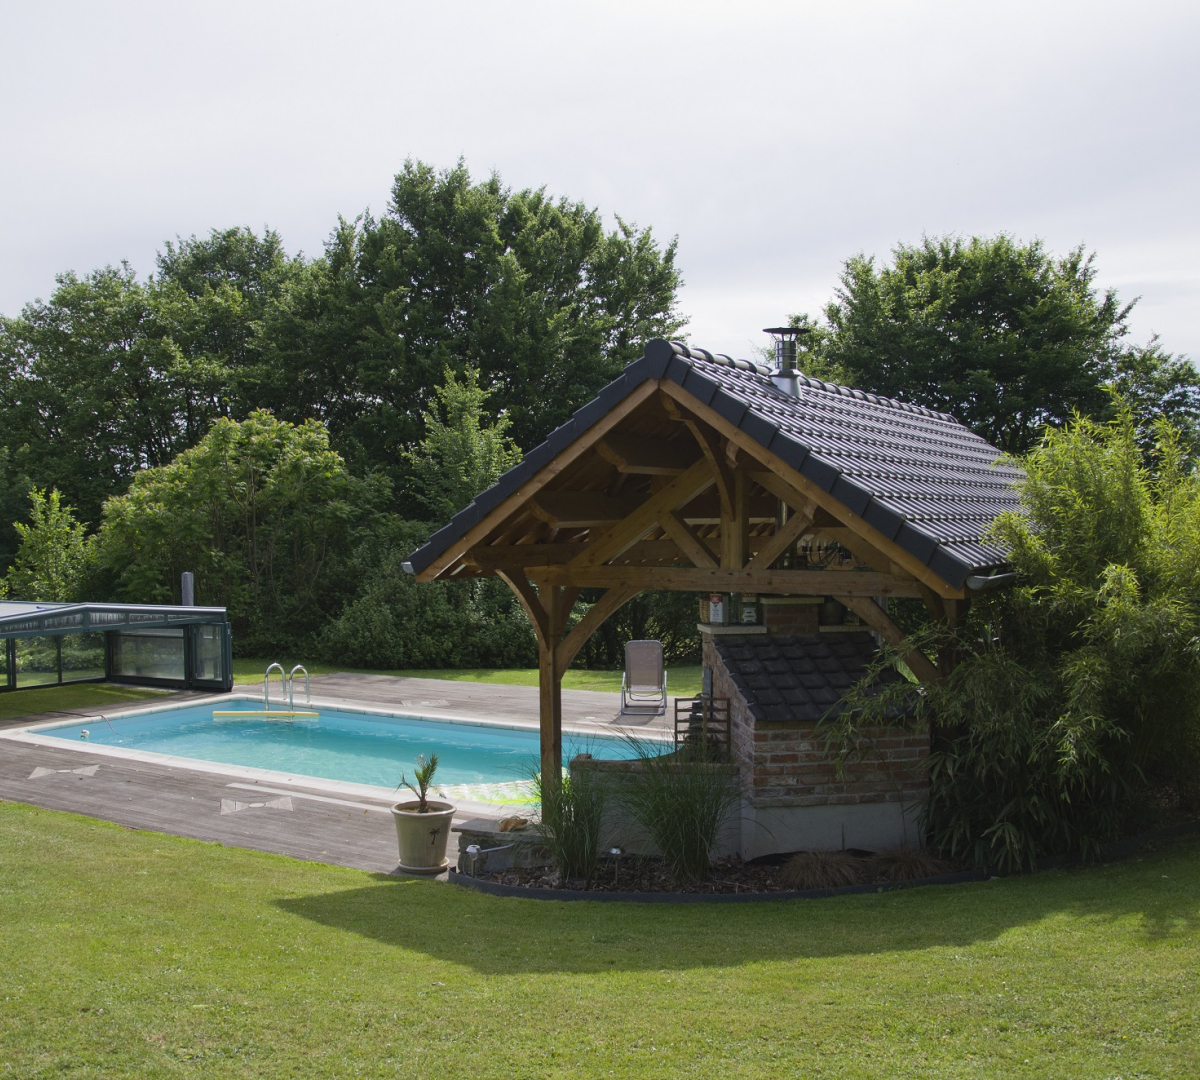 Pool house avec barbecue